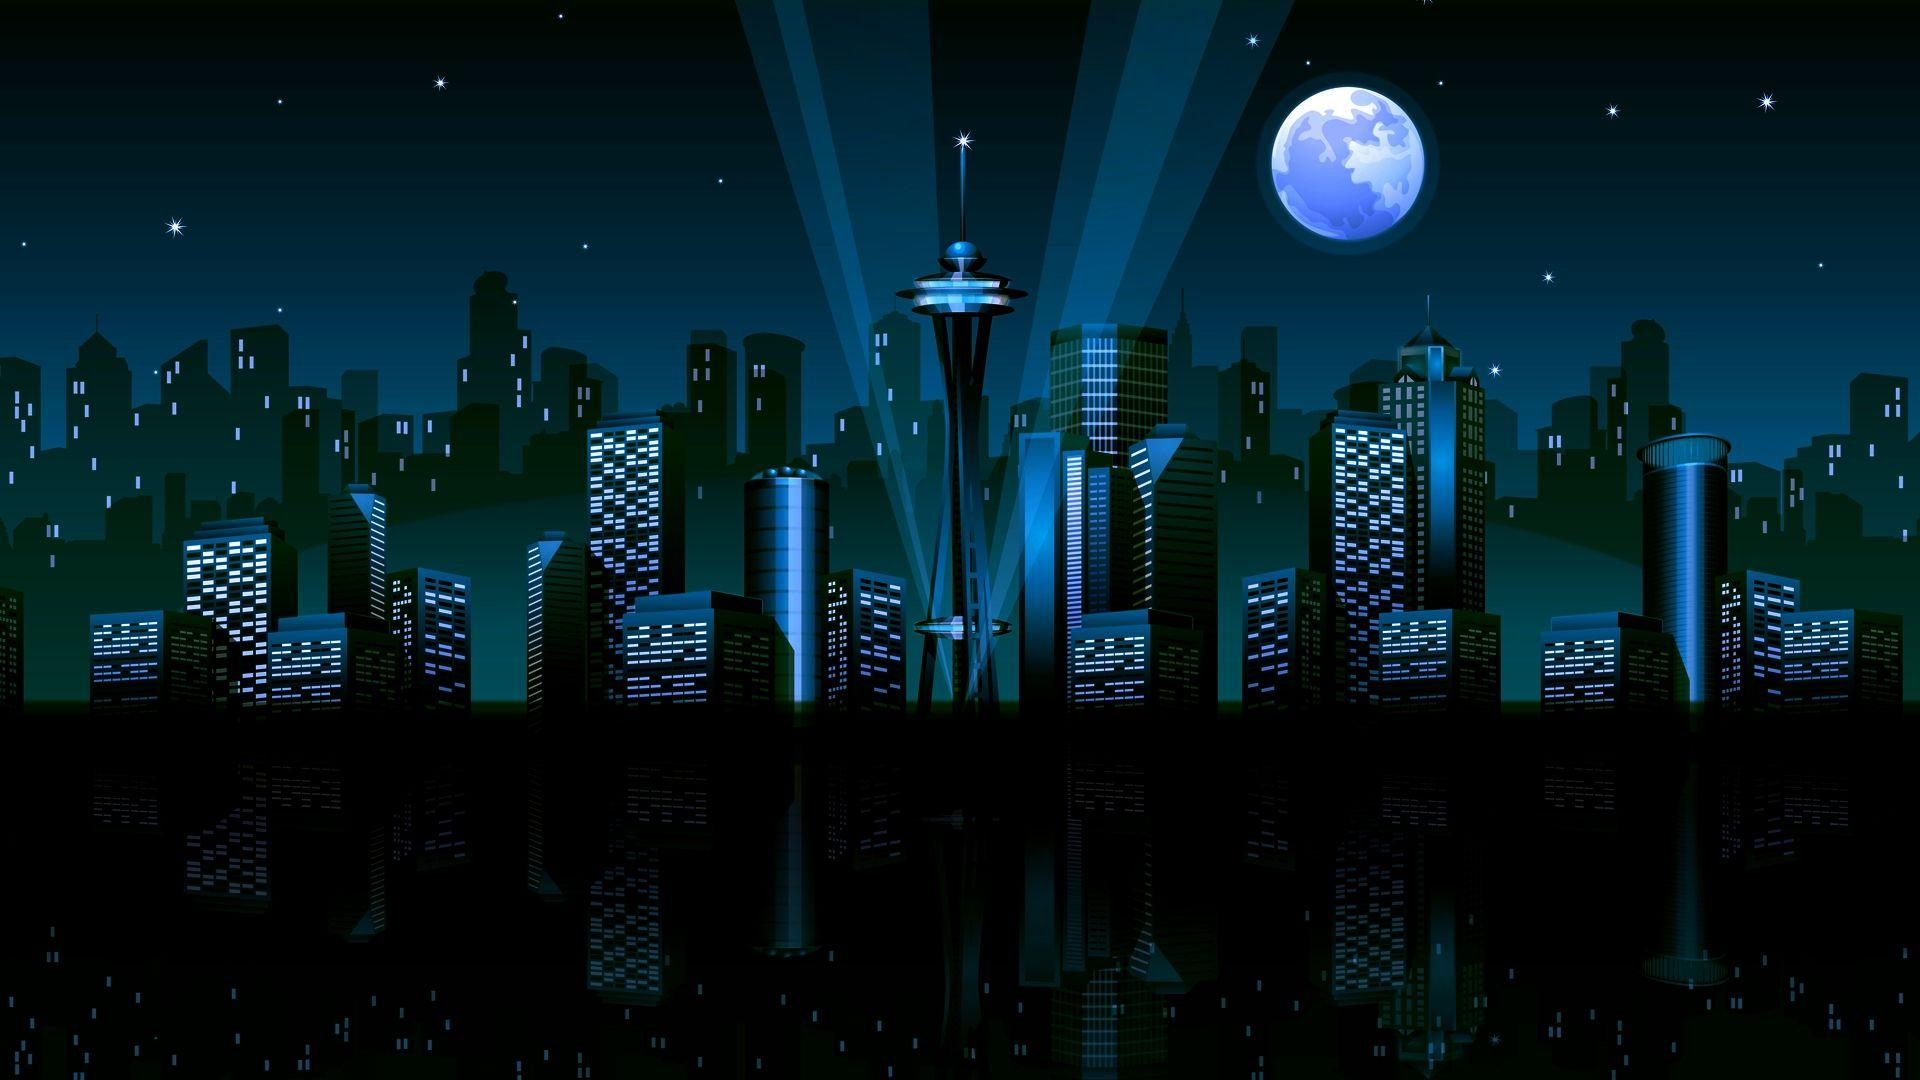 Numa Vector City Nightlife Wallpapers By Charlie Henson On DeviantArt